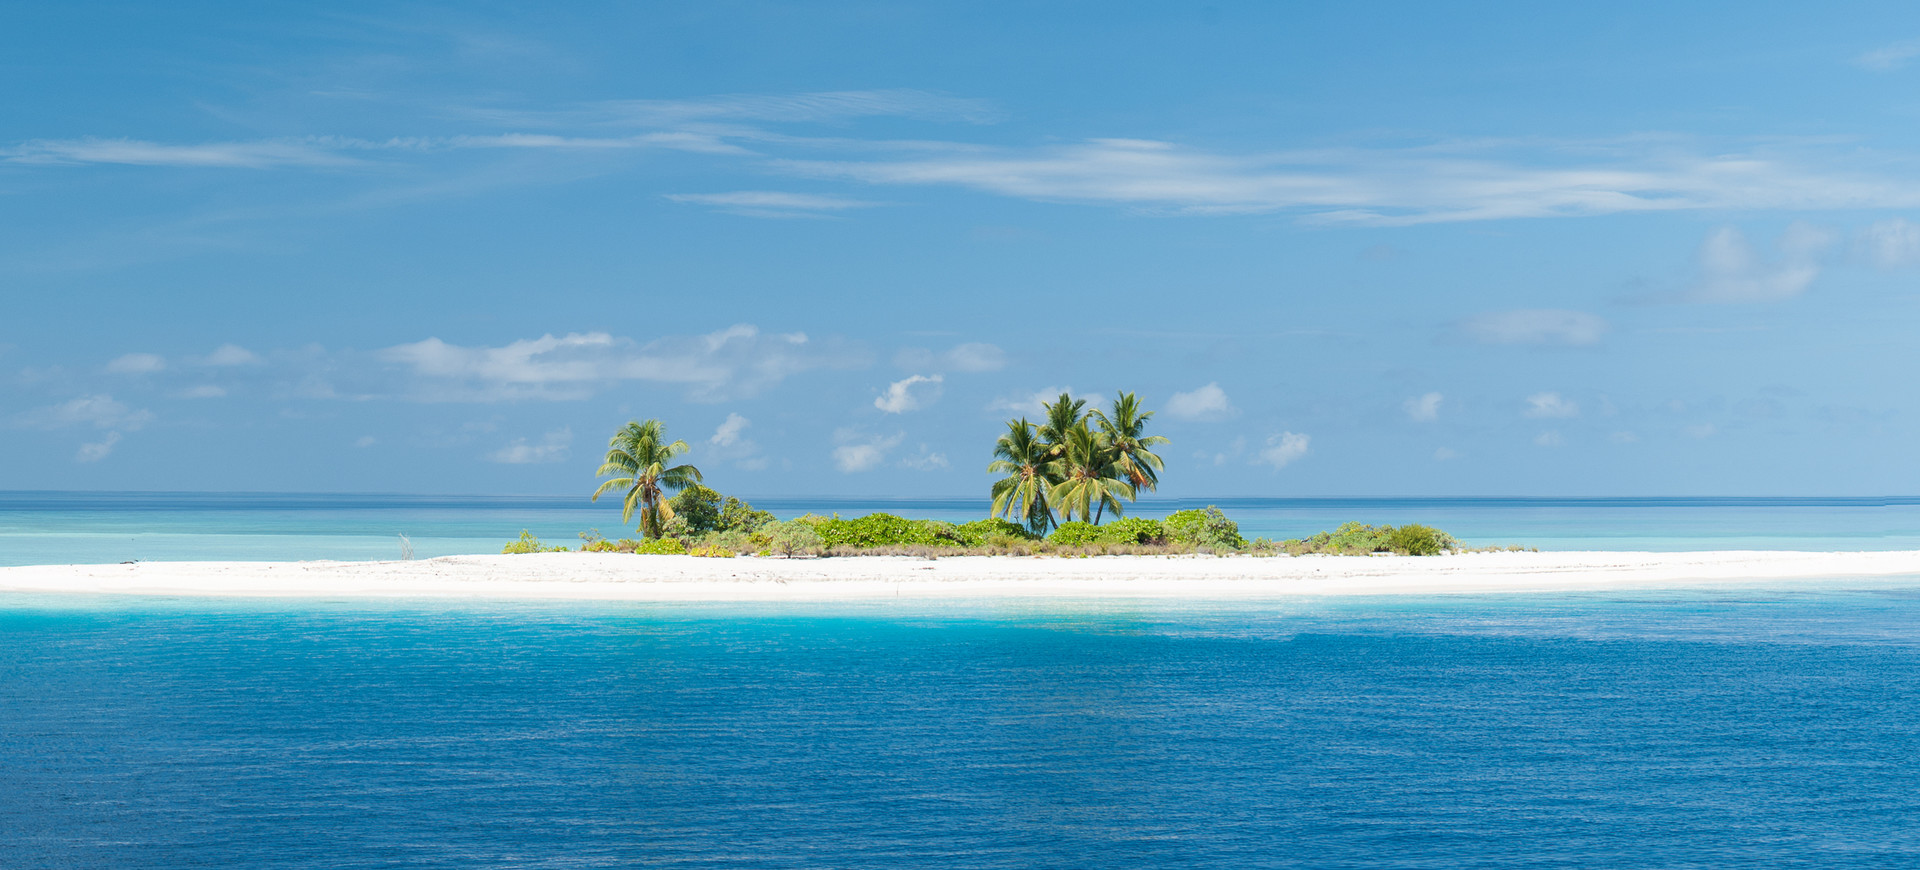 Welcome to Maldives